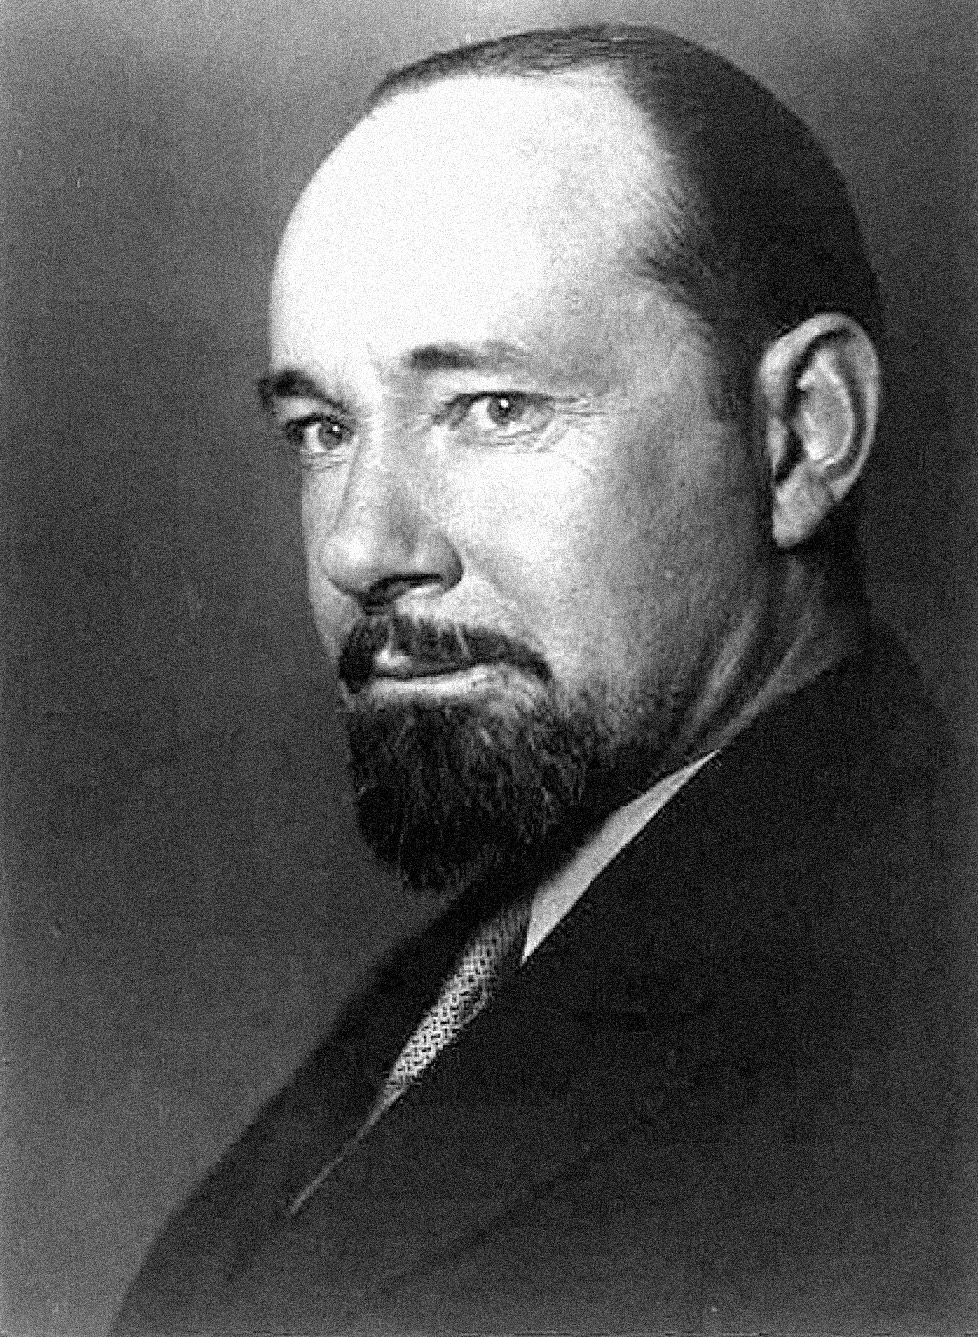 Hubert Wilkins